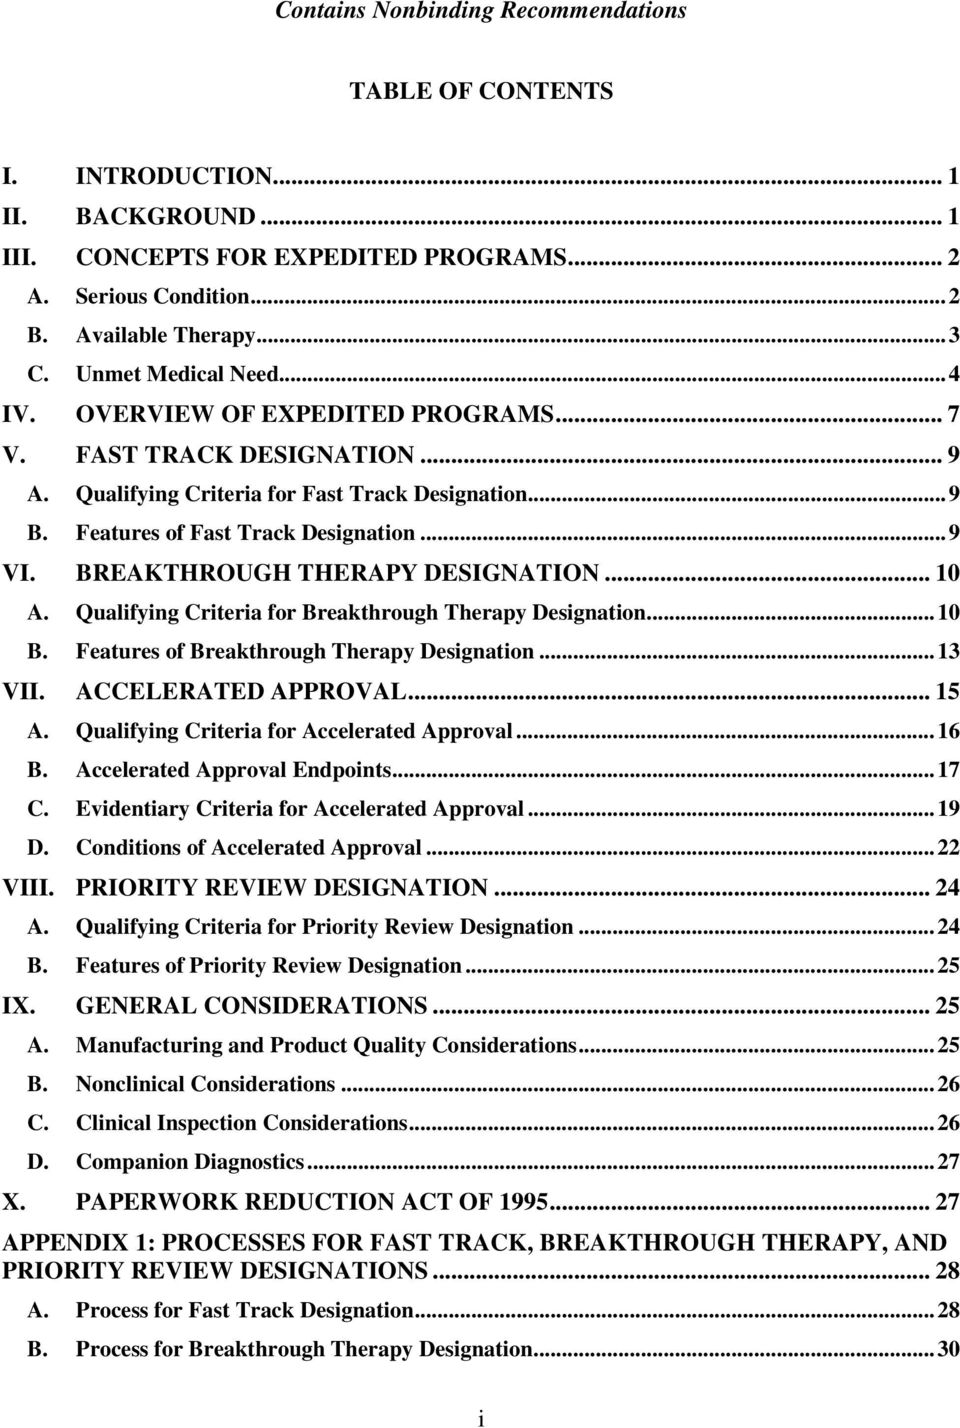 BREAKTHROUGH THERAPY DESIGNATION... 10 A. Qualifying Criteria for Breakthrough Therapy Designation... 10 B. Features of Breakthrough Therapy Designation... 13 VII. ACCELERATED APPROVAL... 15 A.